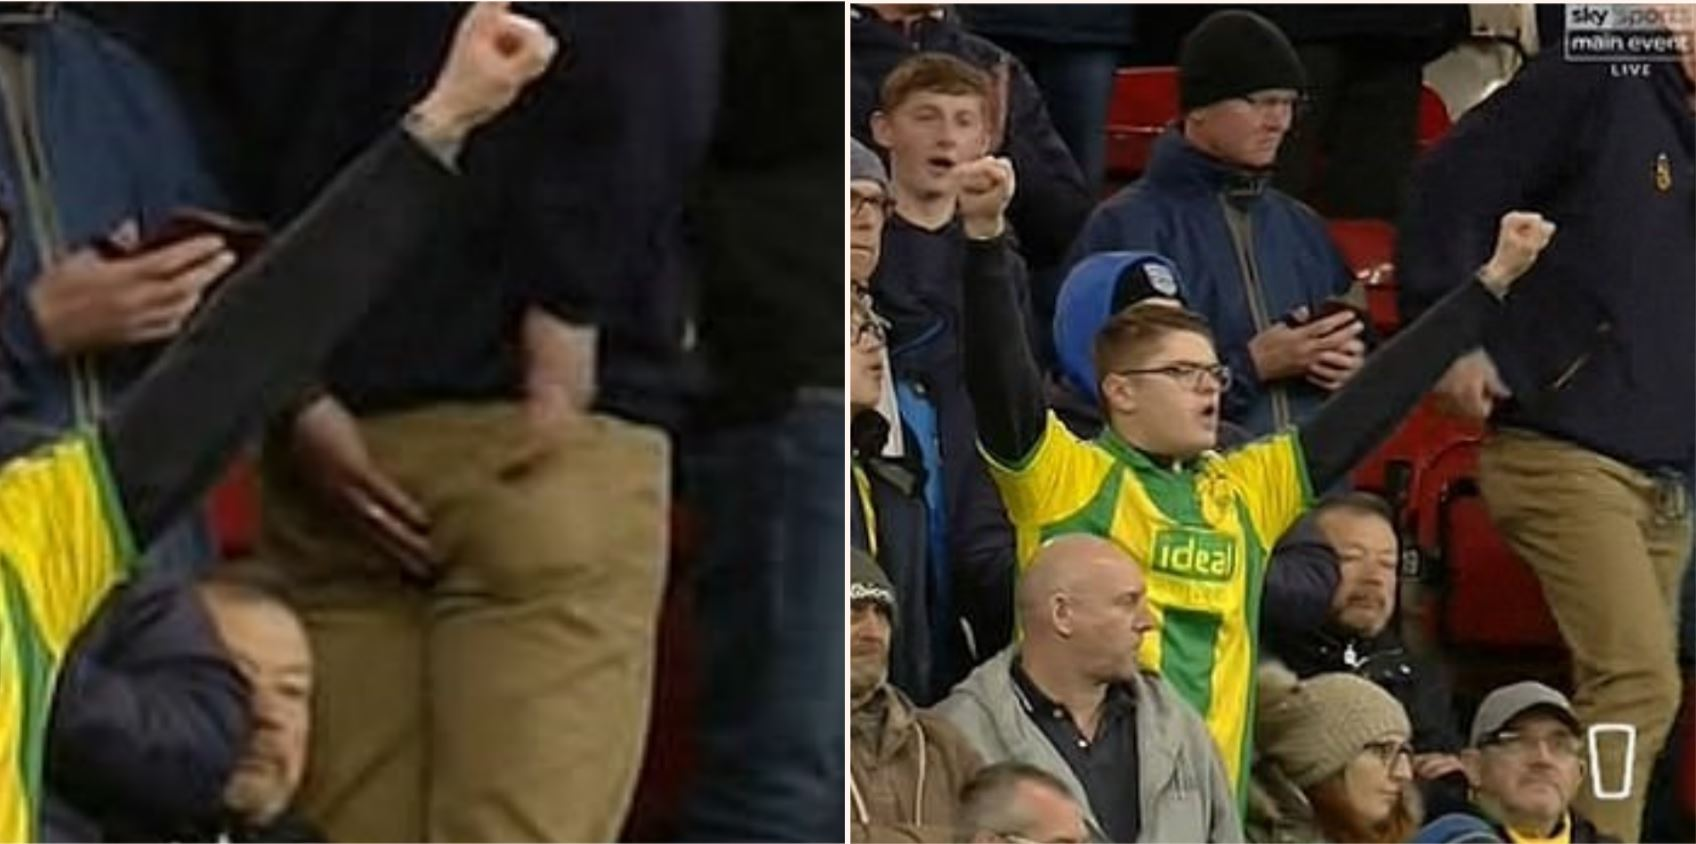 West Brom football fan appears to have had an unfortunate accident that aired on live TV